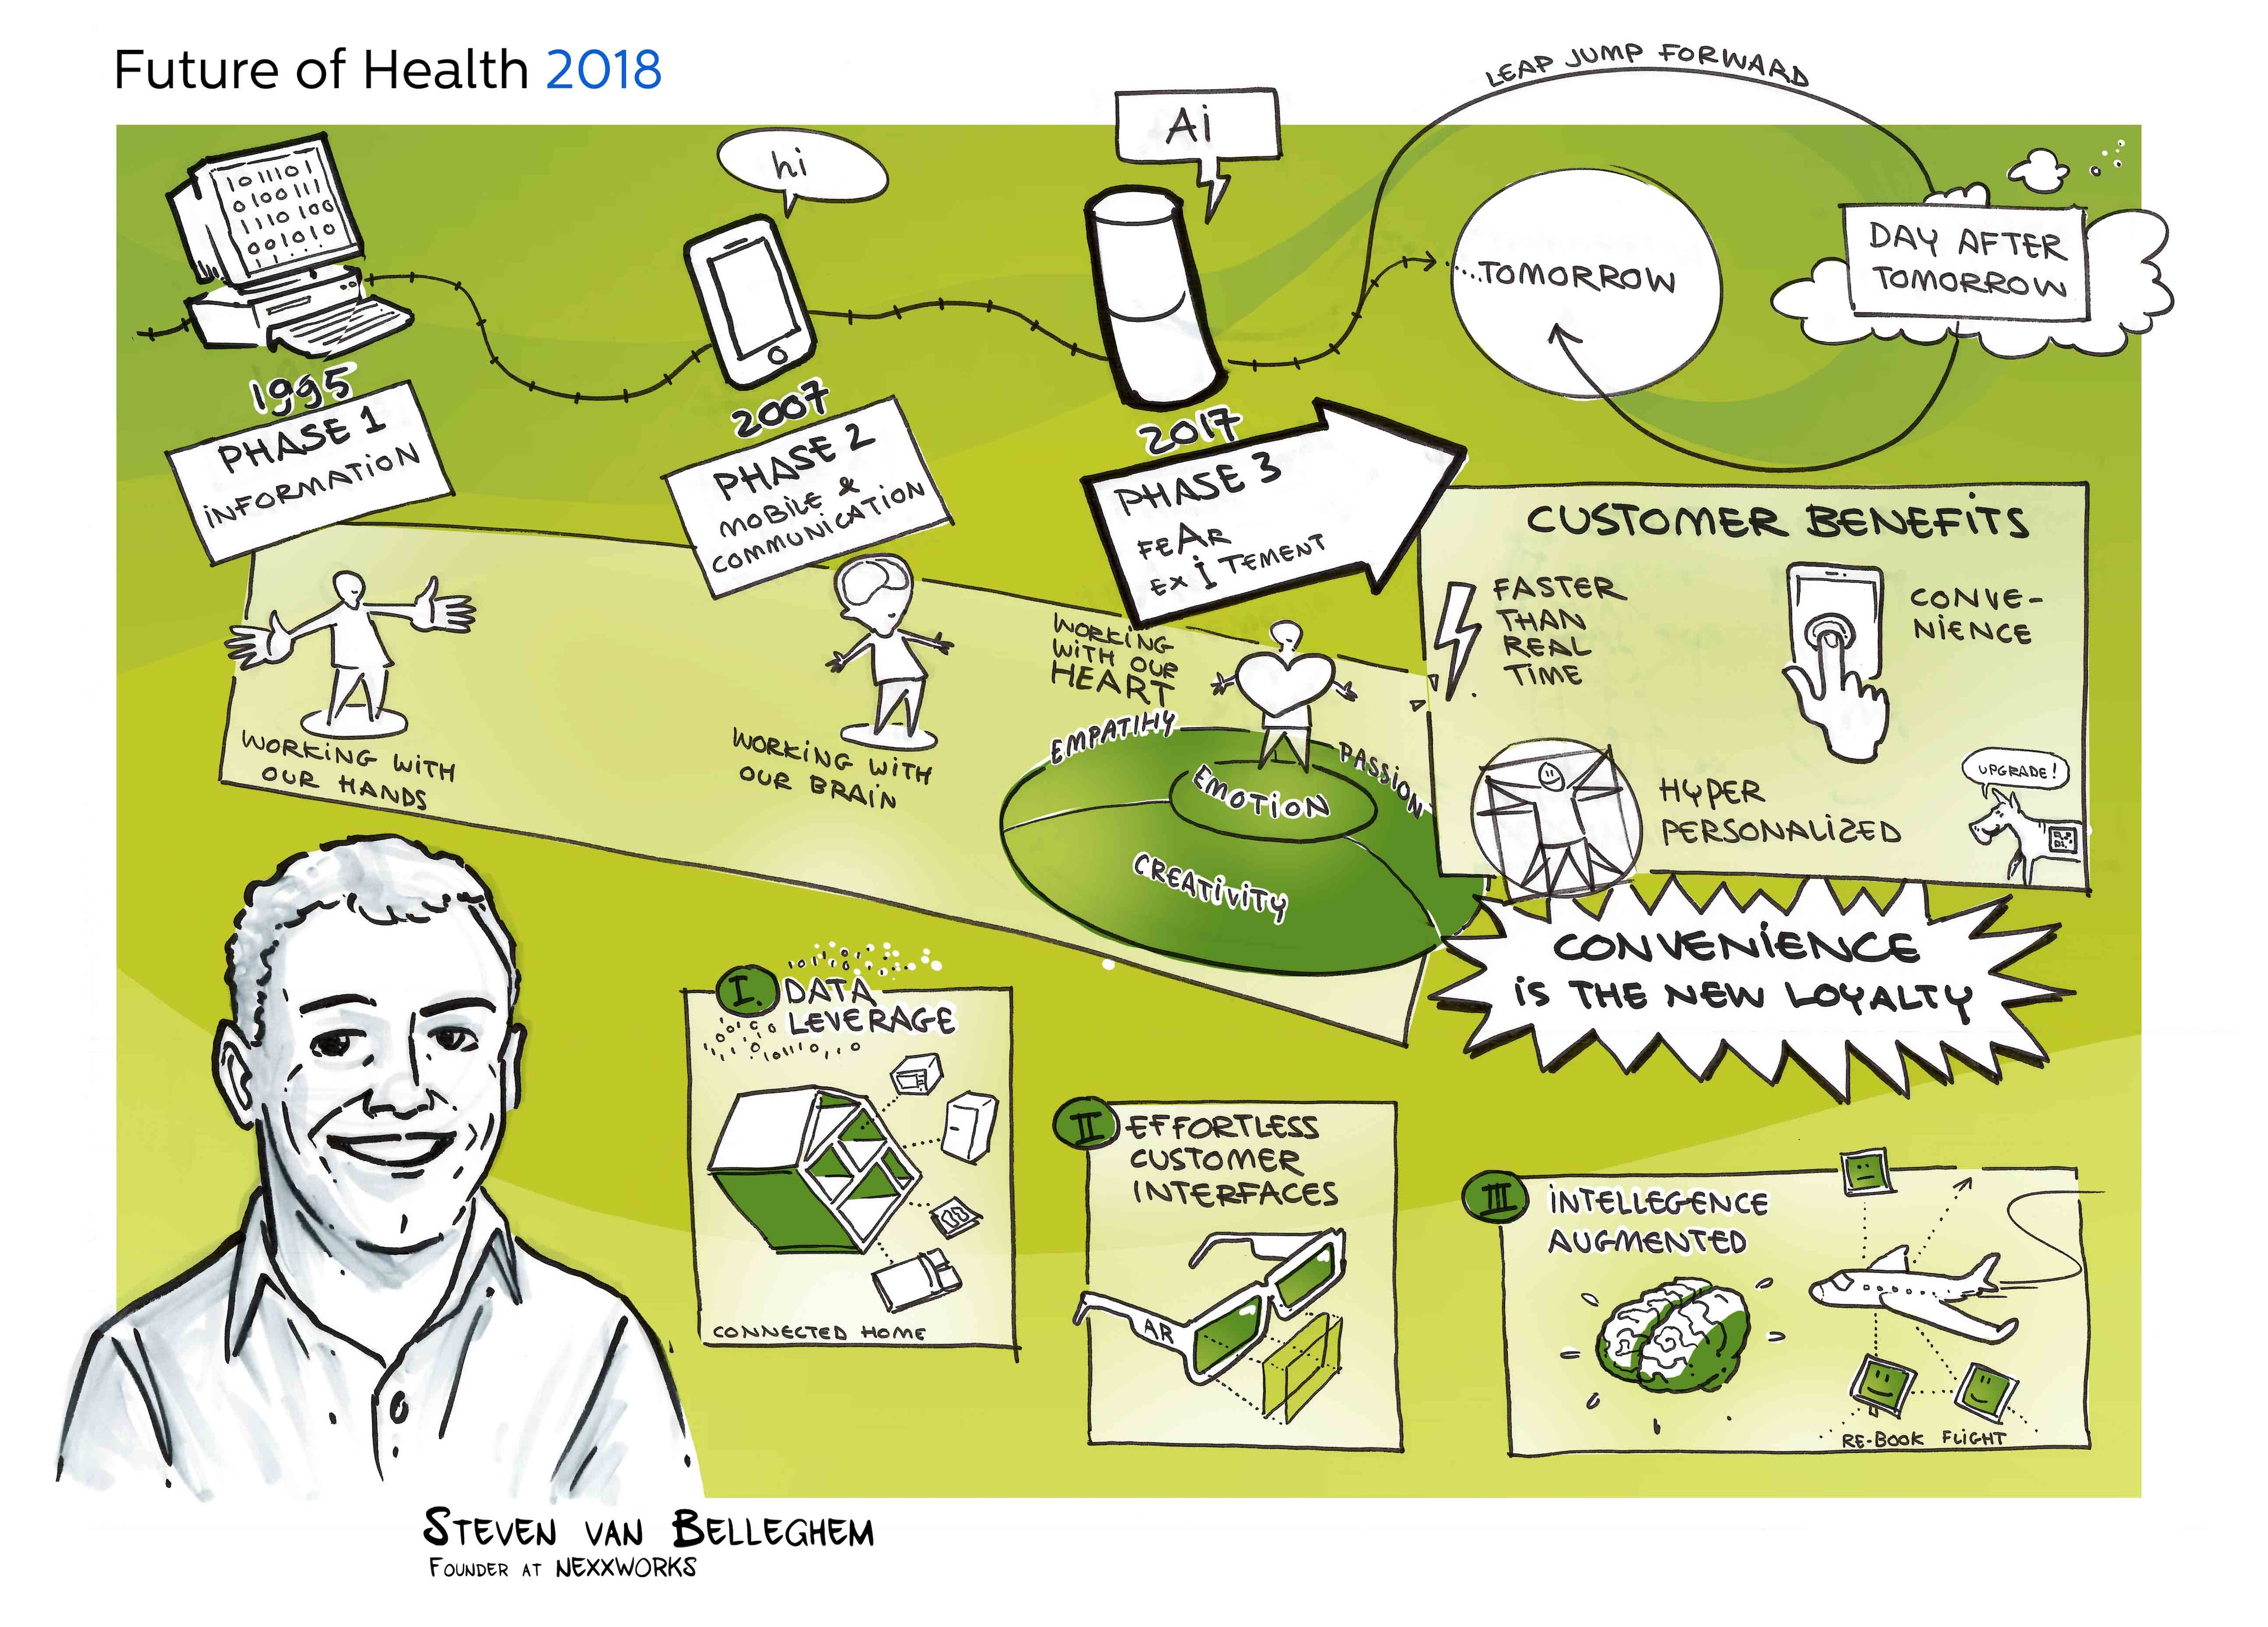 Future of Health 2018 - Steven Van Belleghem